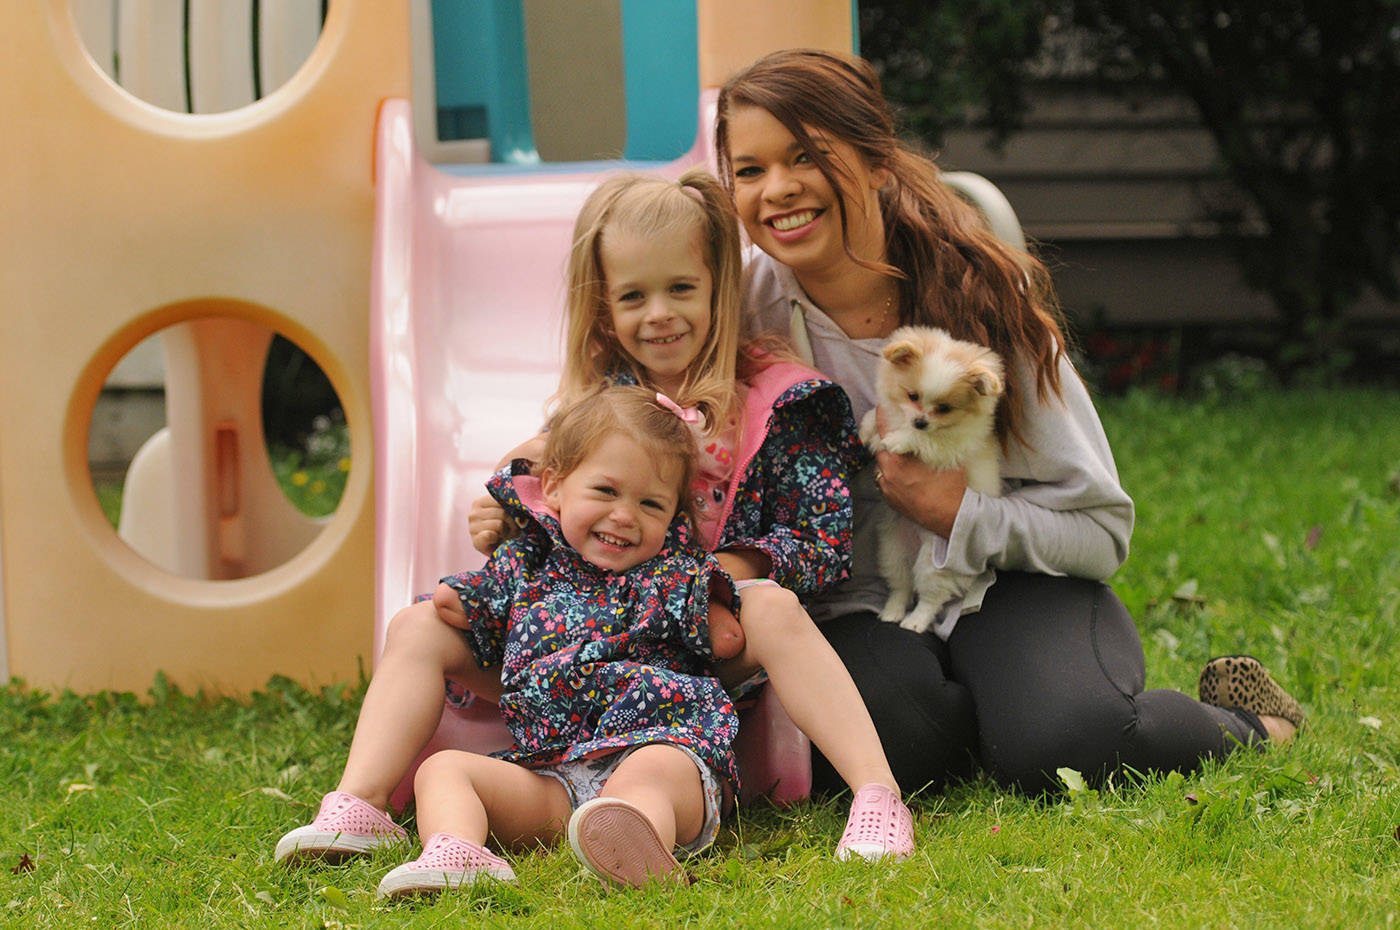 The McLeod family – Ivy, 2, Elena, 5, and mom Vanessa – are seen with their new puppy Lucky outside their home in Chilliwack on Thursday, June 10, 2021. Not pictured is husband/dad Sean McLeod. (Jenna Hauck/ Chilliwack Progress)